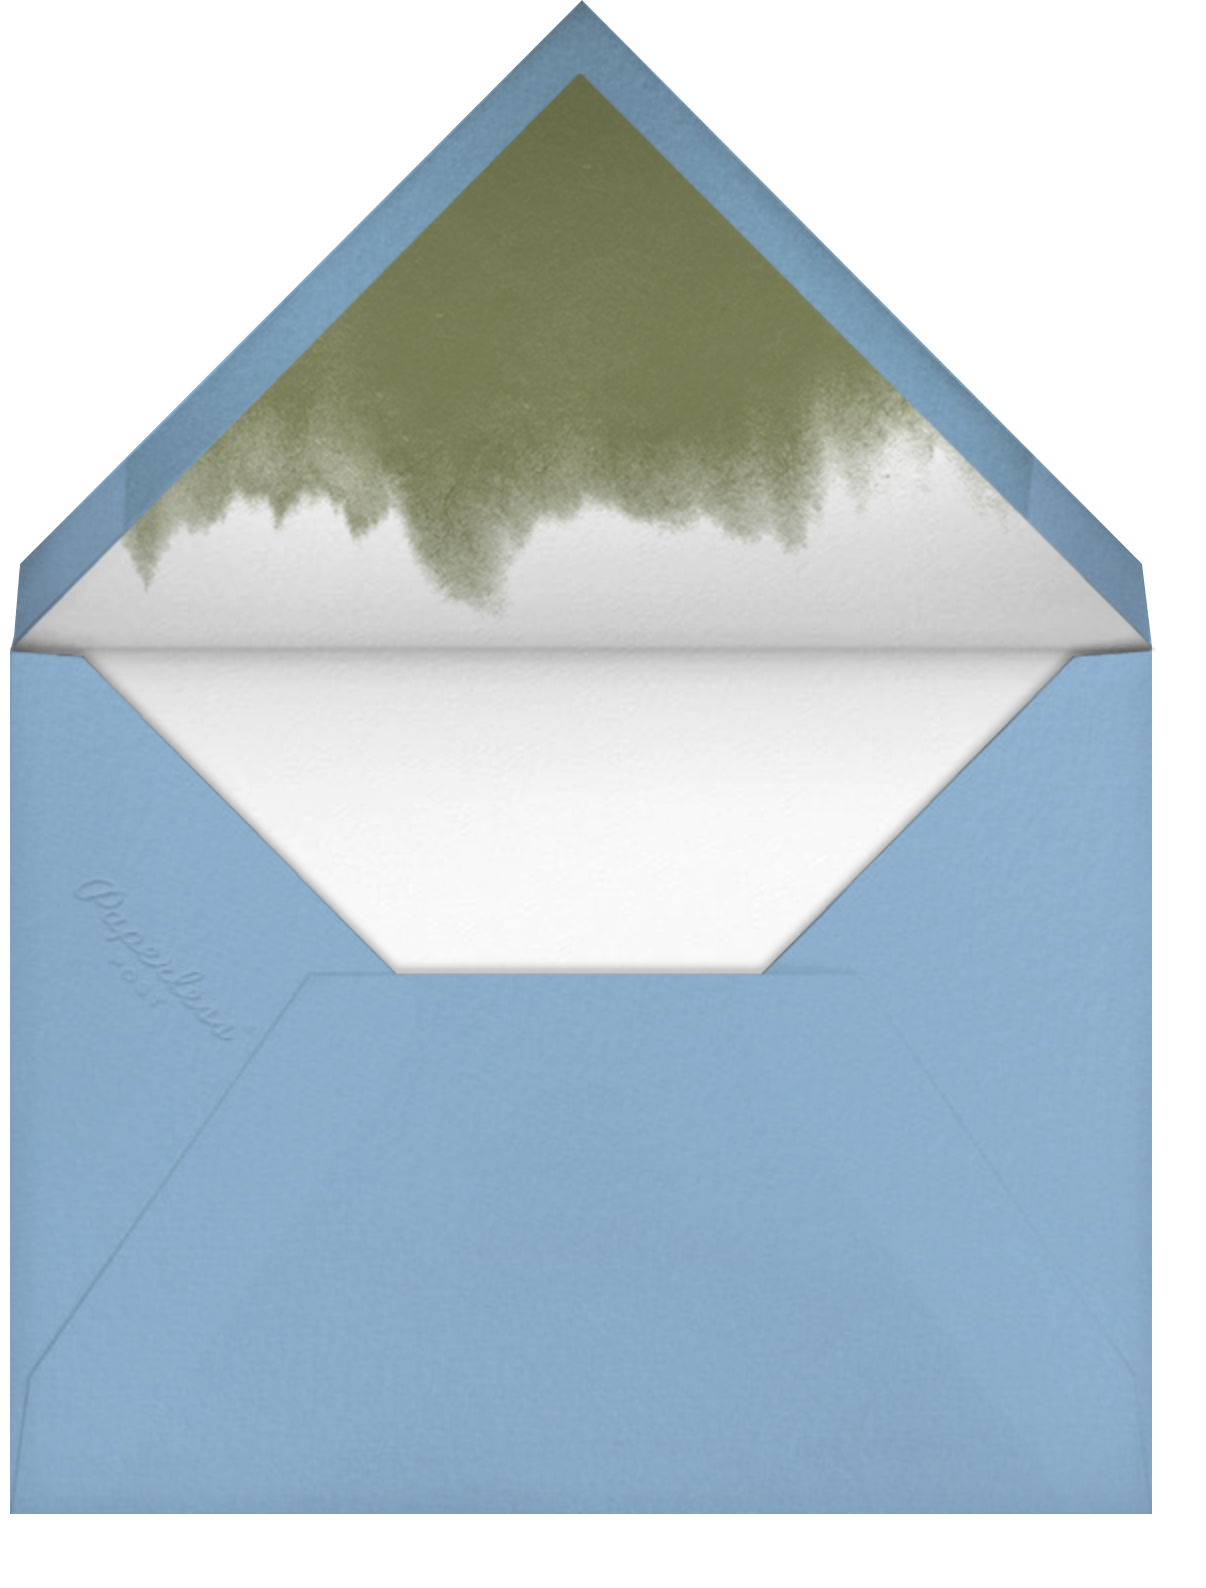 Snowdrop - Thinking of You - Paperless Post - Thinking of you - envelope back